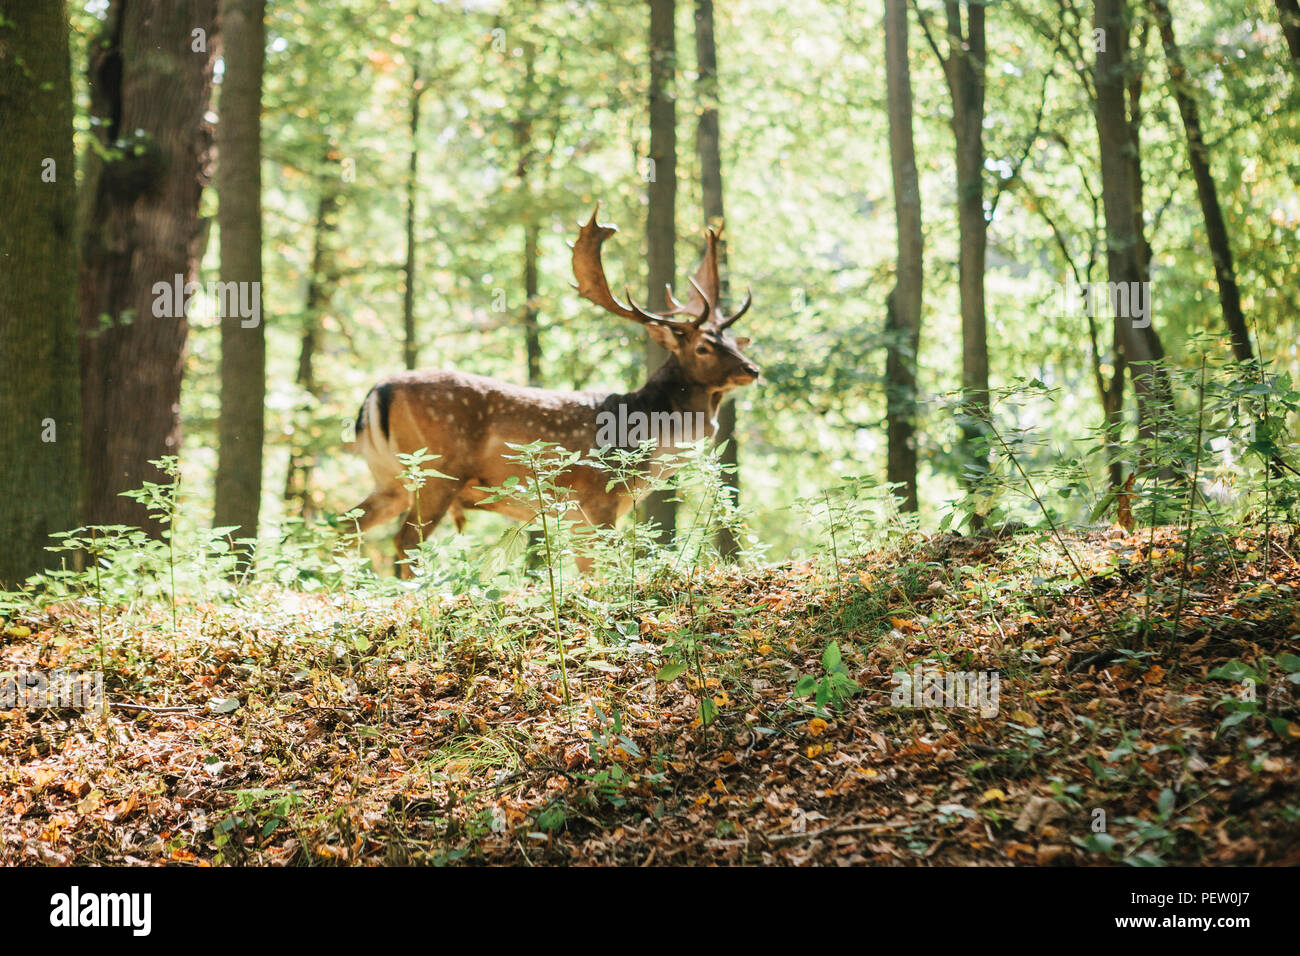 Beautiful deer with branched horns stands on a hill in an autumn forest among trees. Selective focus on grass, deer blurred in the background. - Stock Image